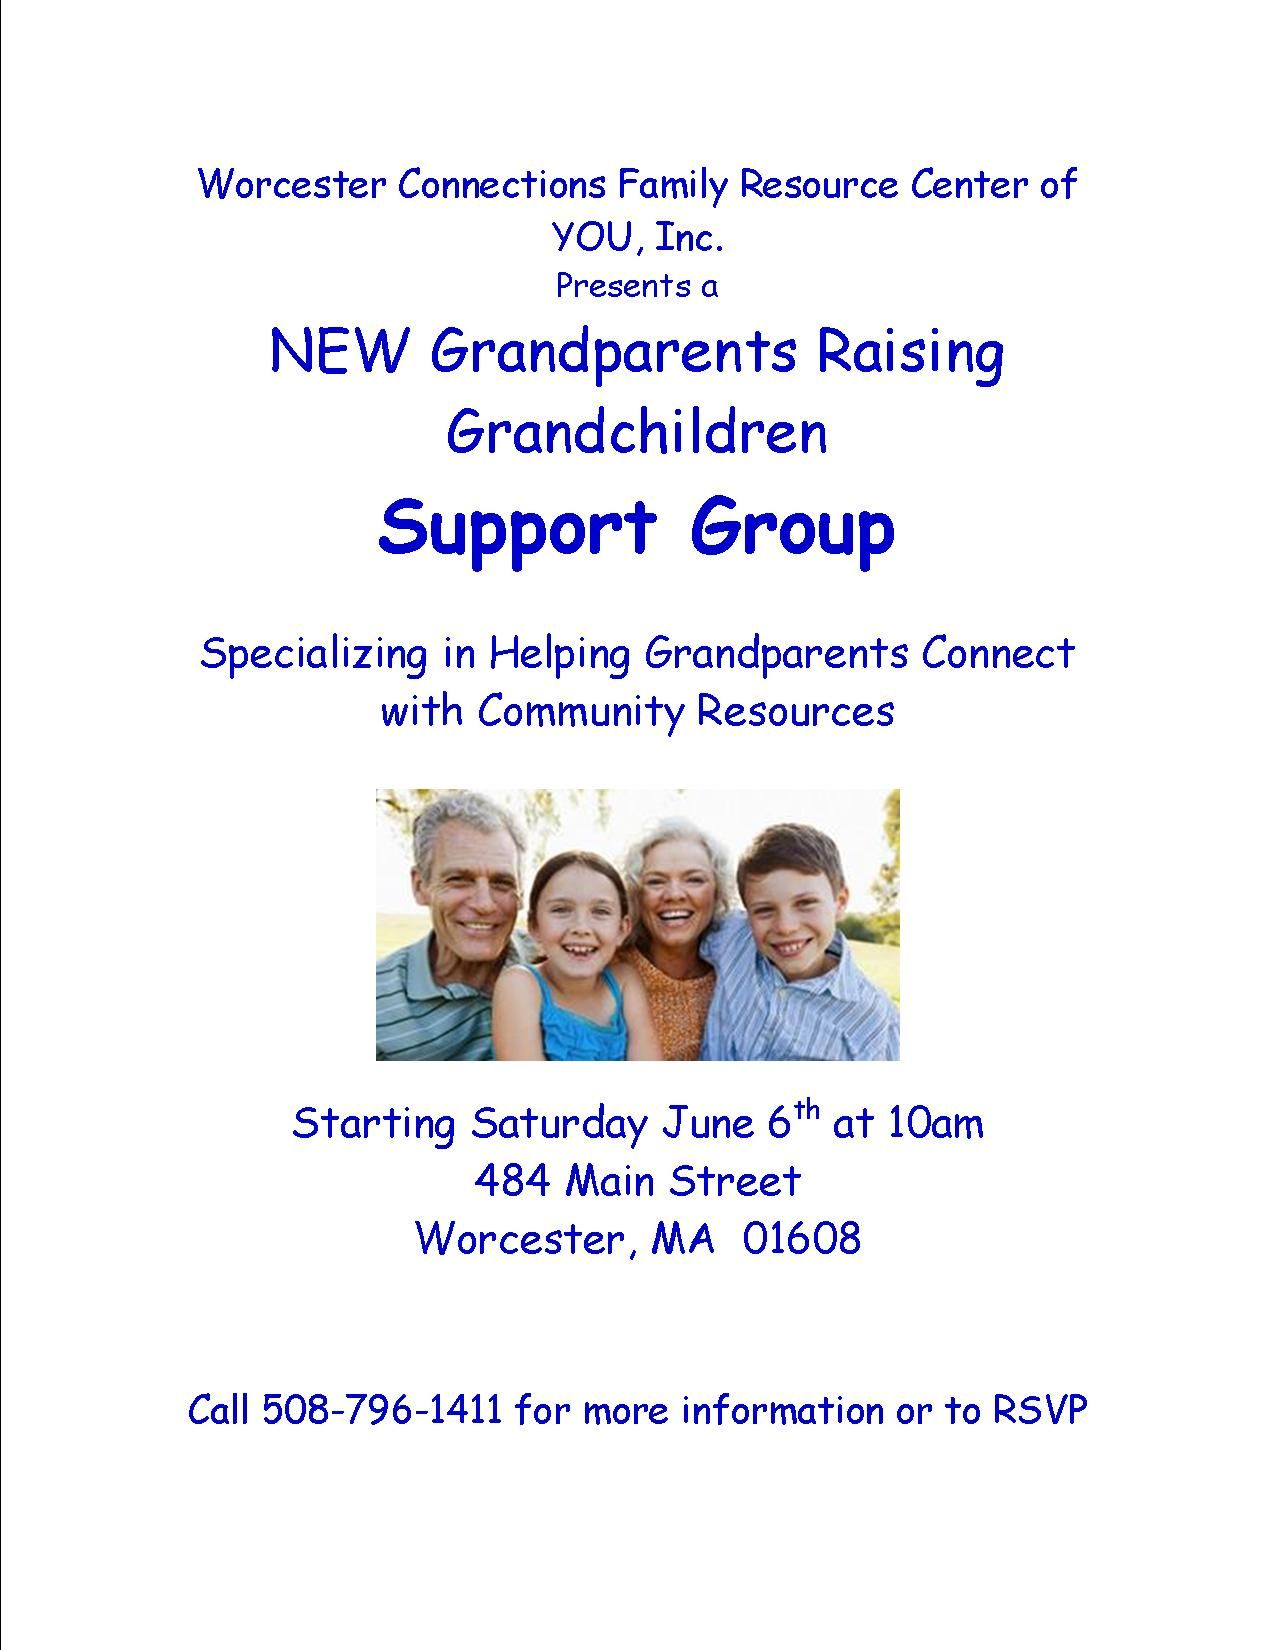 Grandparents Raising Grandchildren June 6th | Community